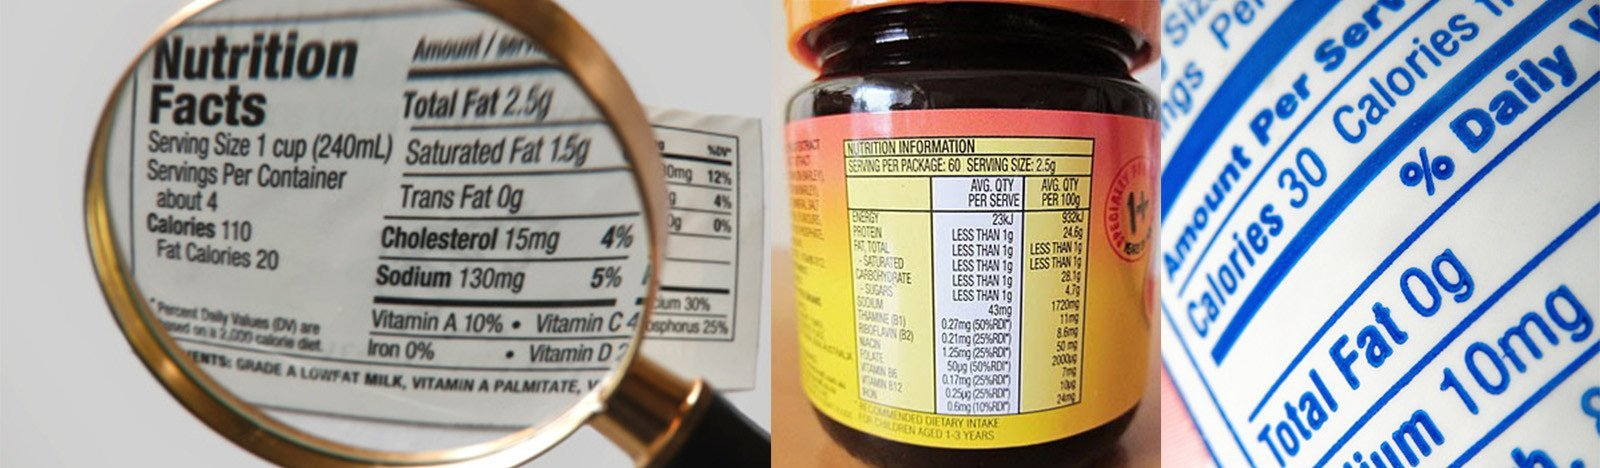 Nutrition facts labels printing